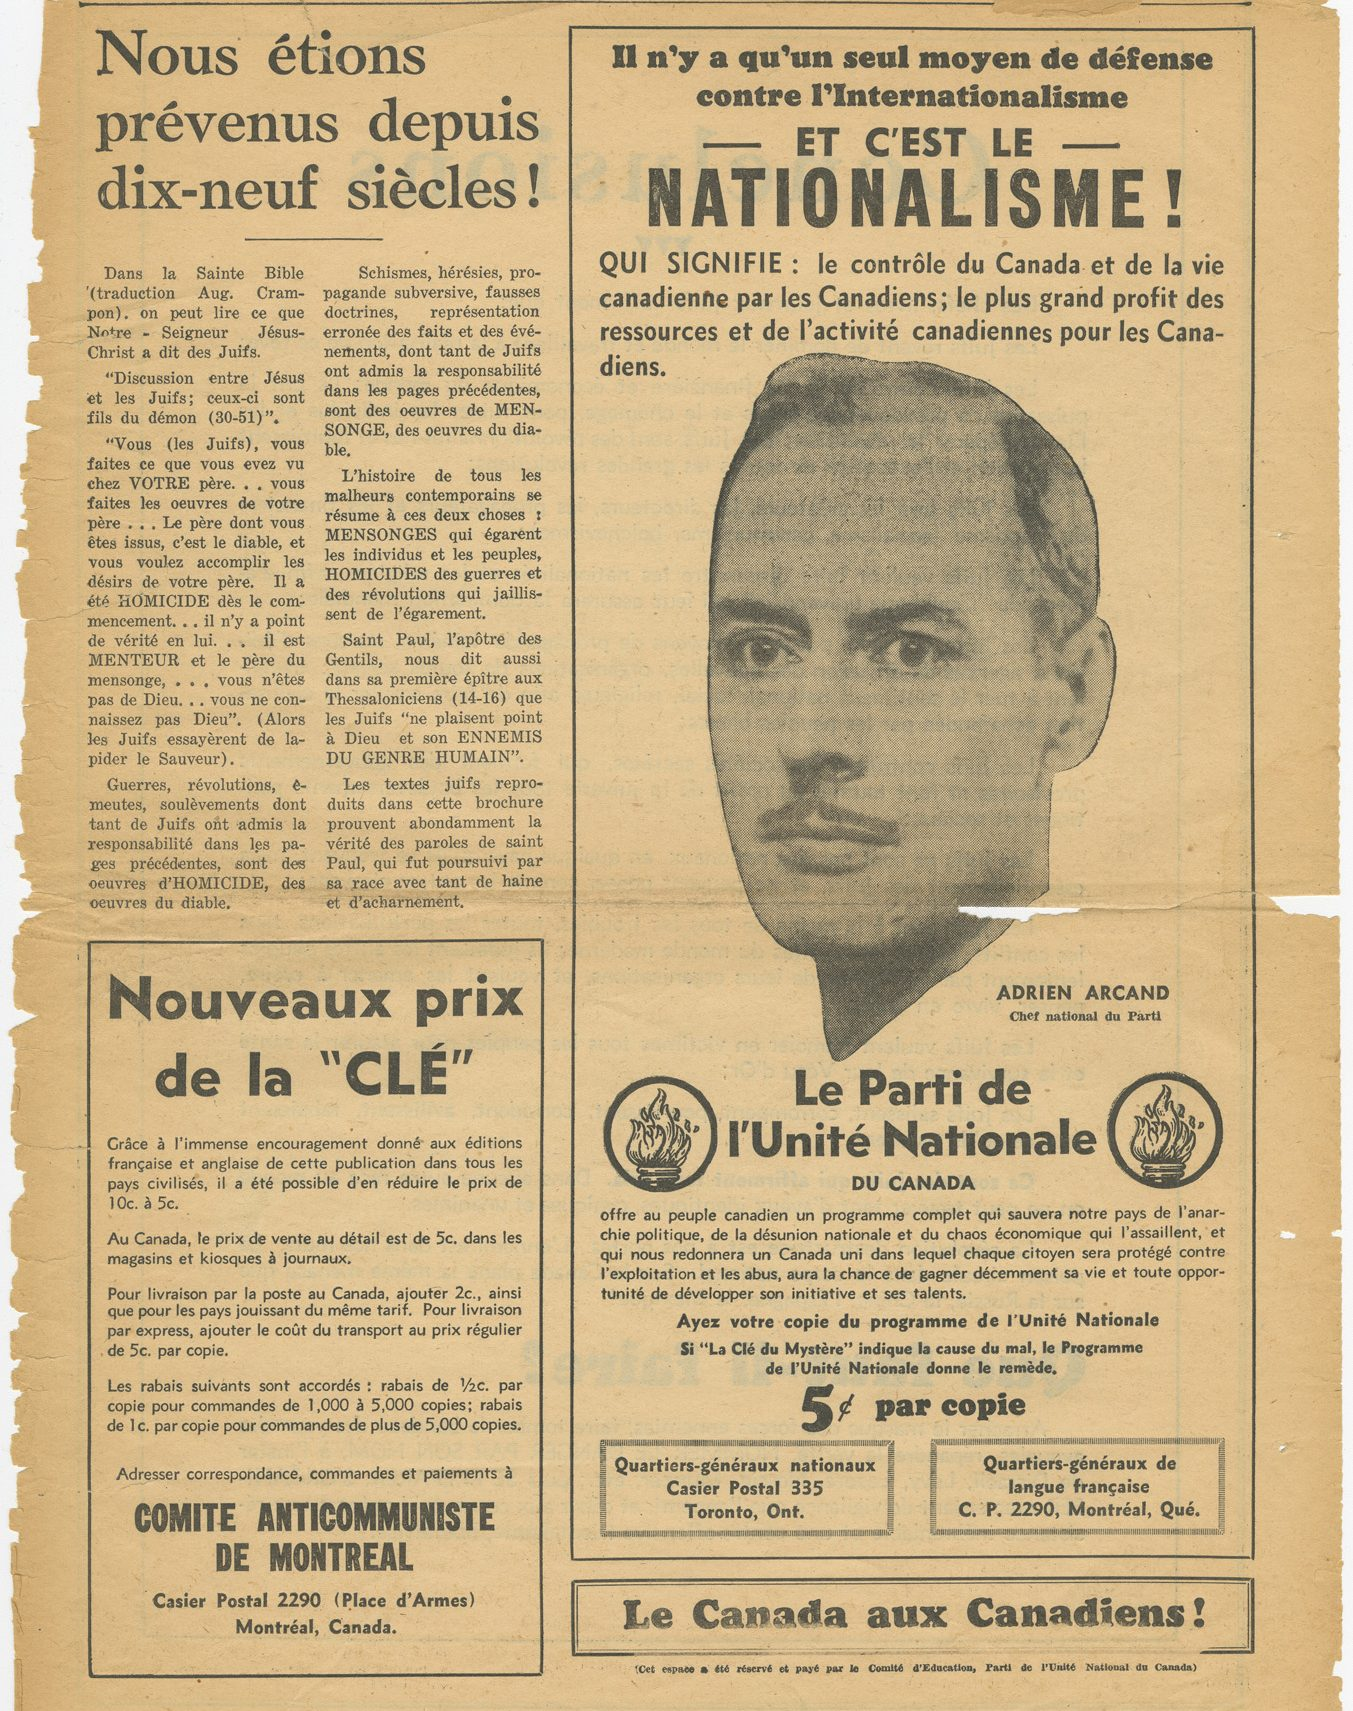 The booklet was published by Adrien Arcand under the name of the Ligue feminine anti-communiste de Montréal.